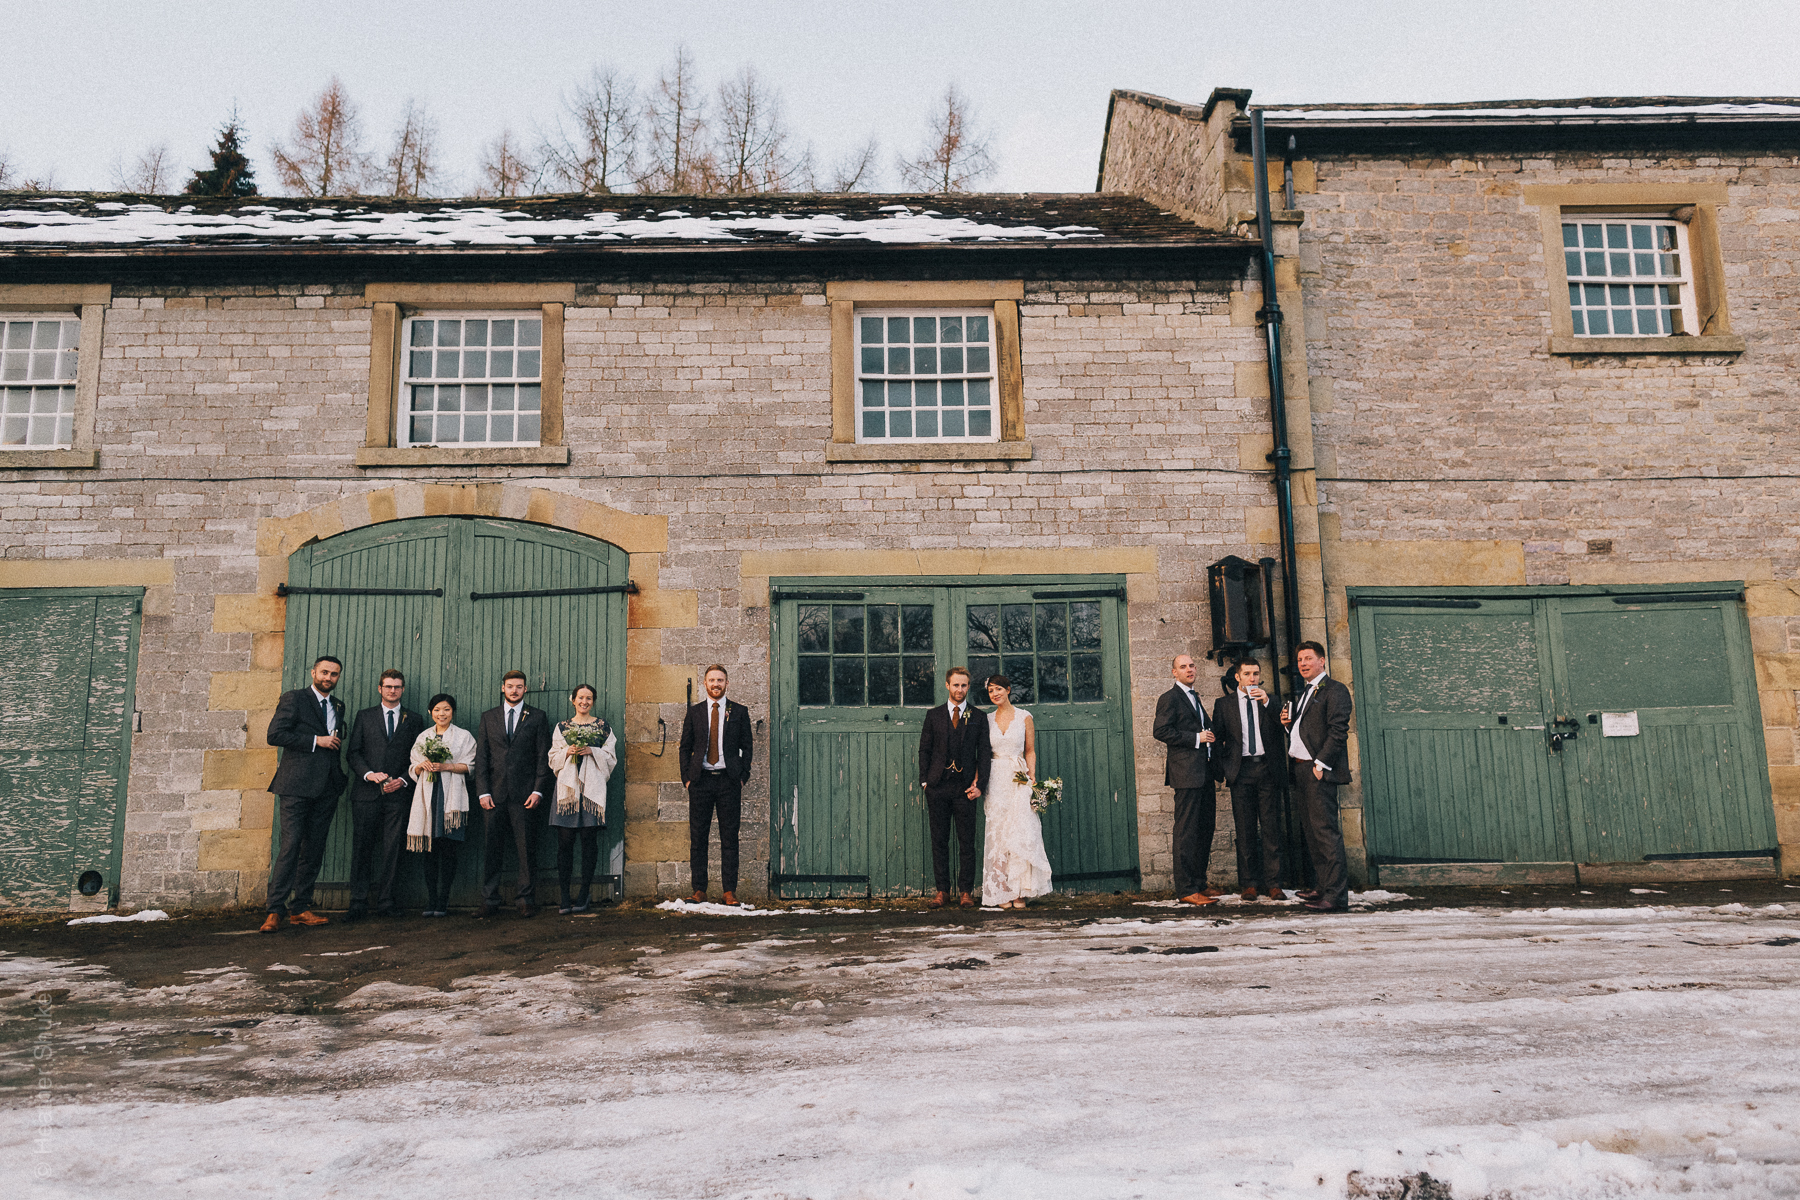 Snokwy peak district wedding-5